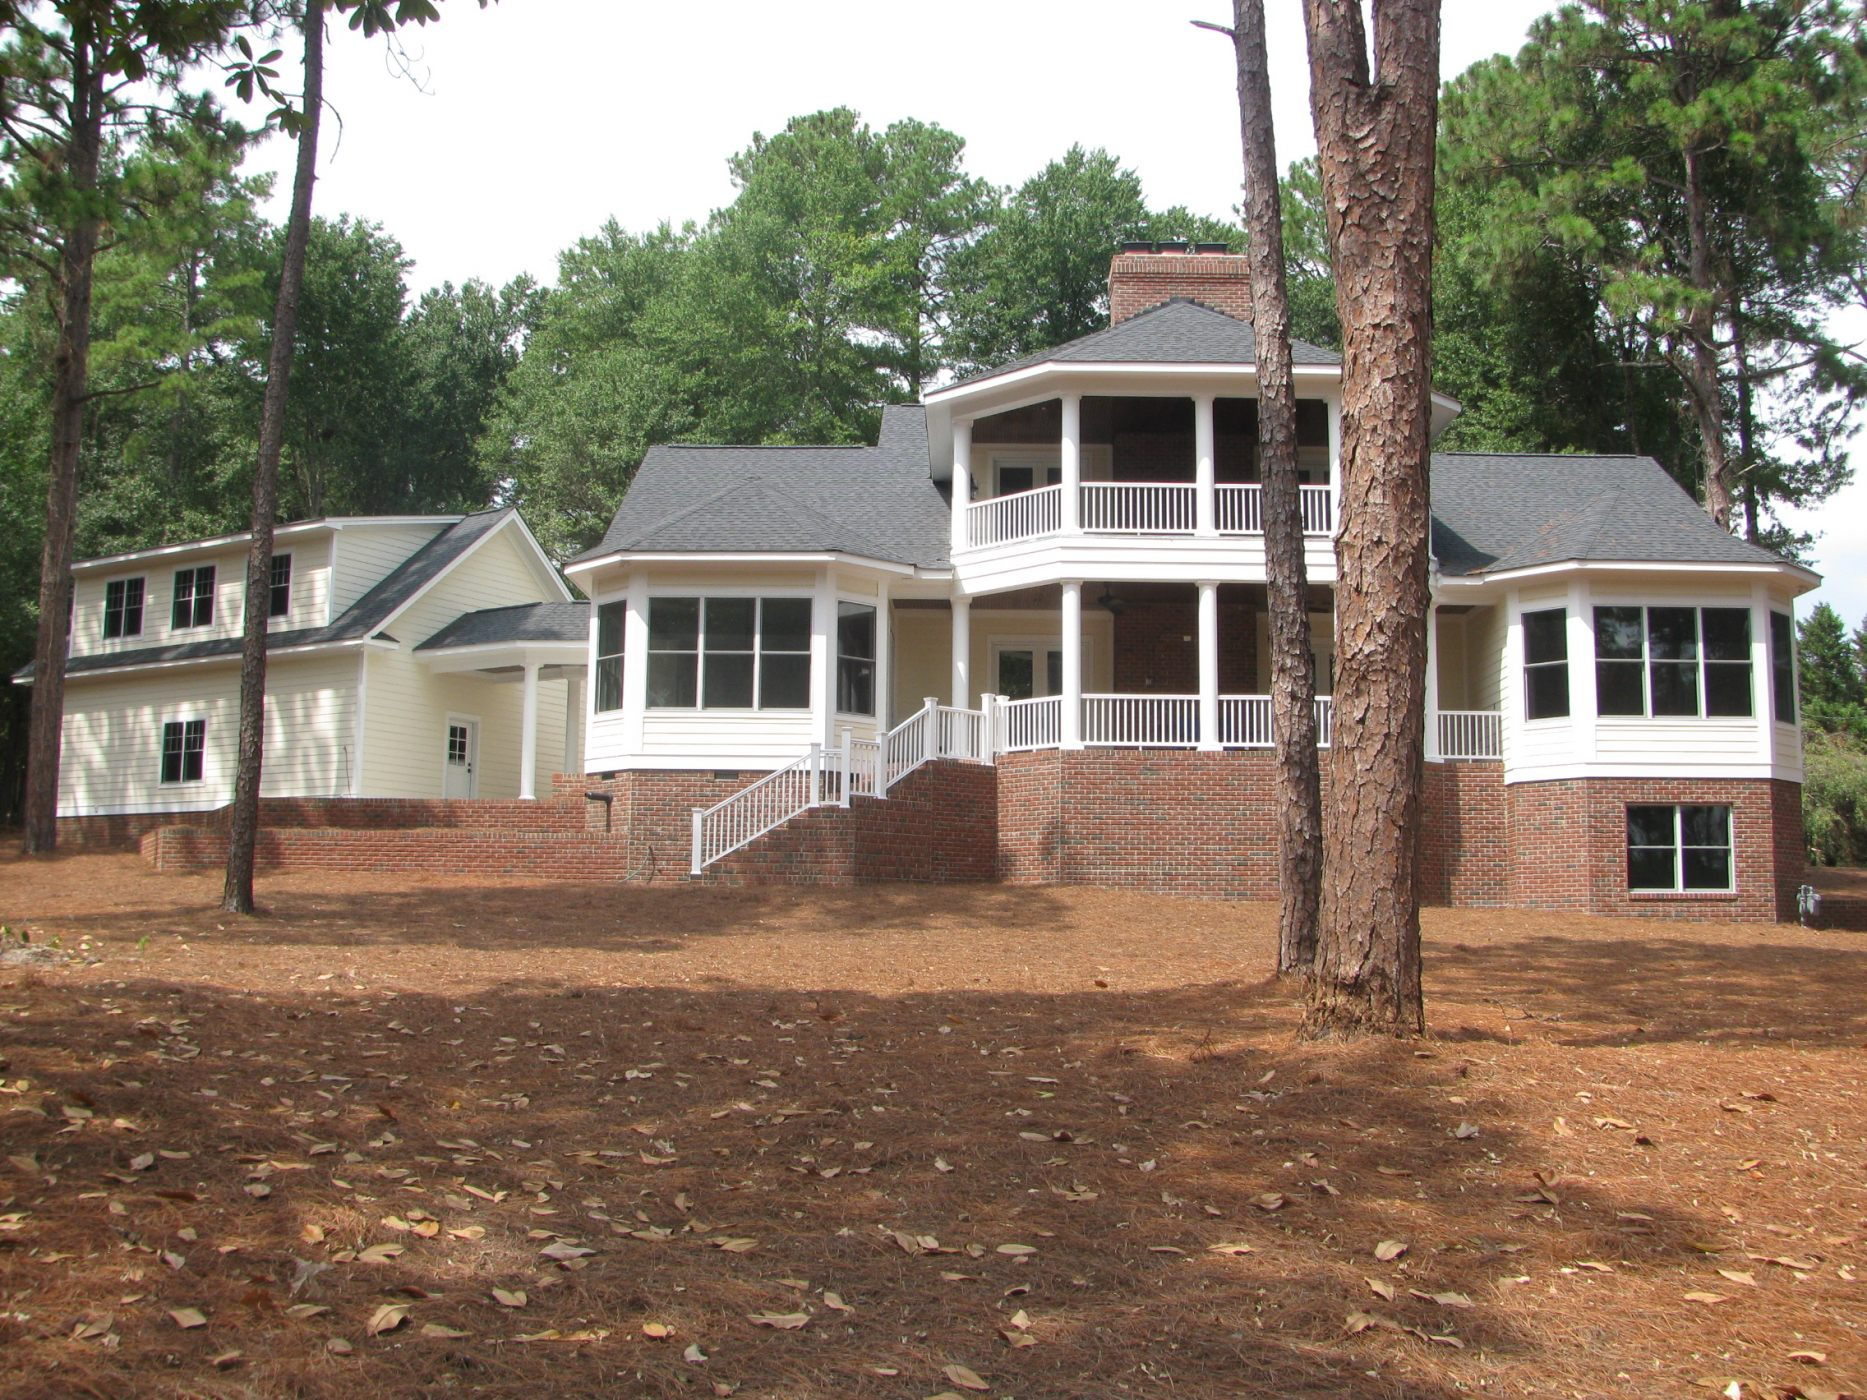 Pinehurst Home of the Year